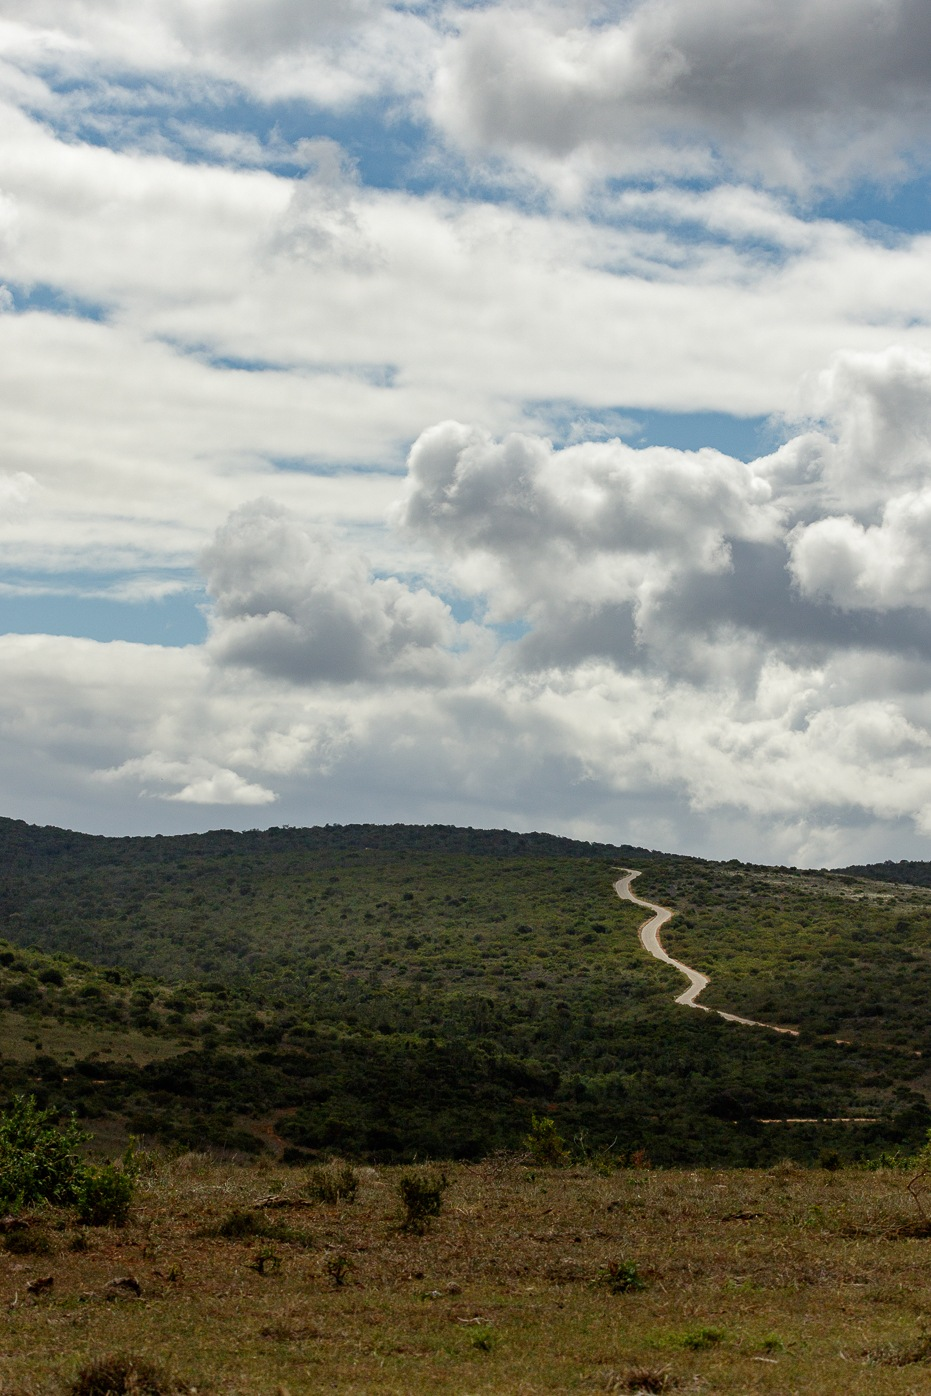 Crooked road up to the mountain by Charissa de Scande Lotter